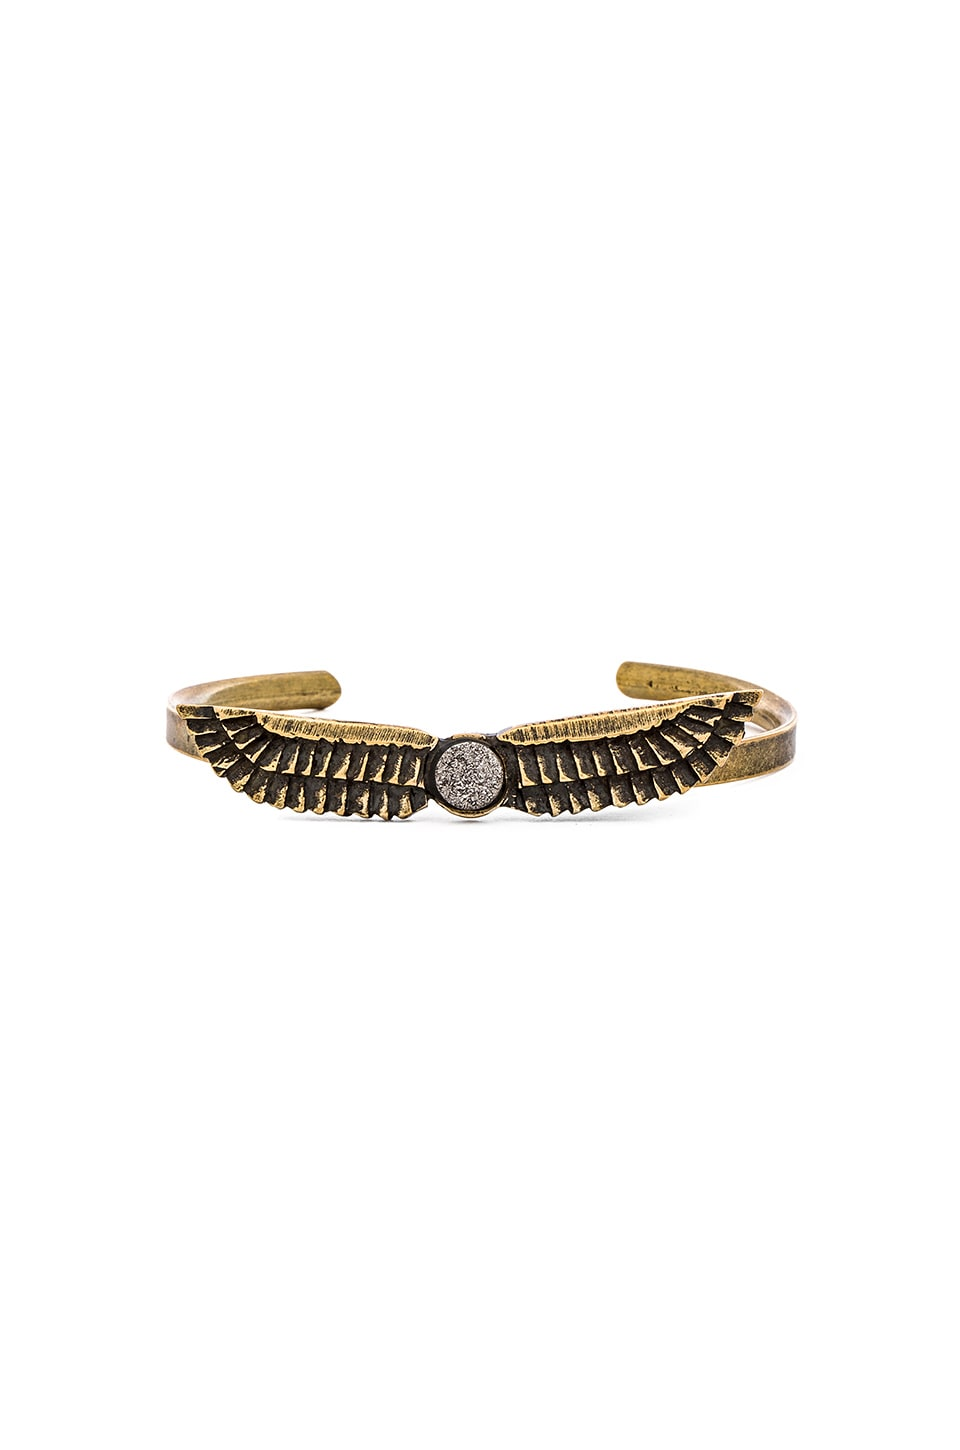 TORCHLIGHT Mini Horus Cuff in Brass with Silver Druzy